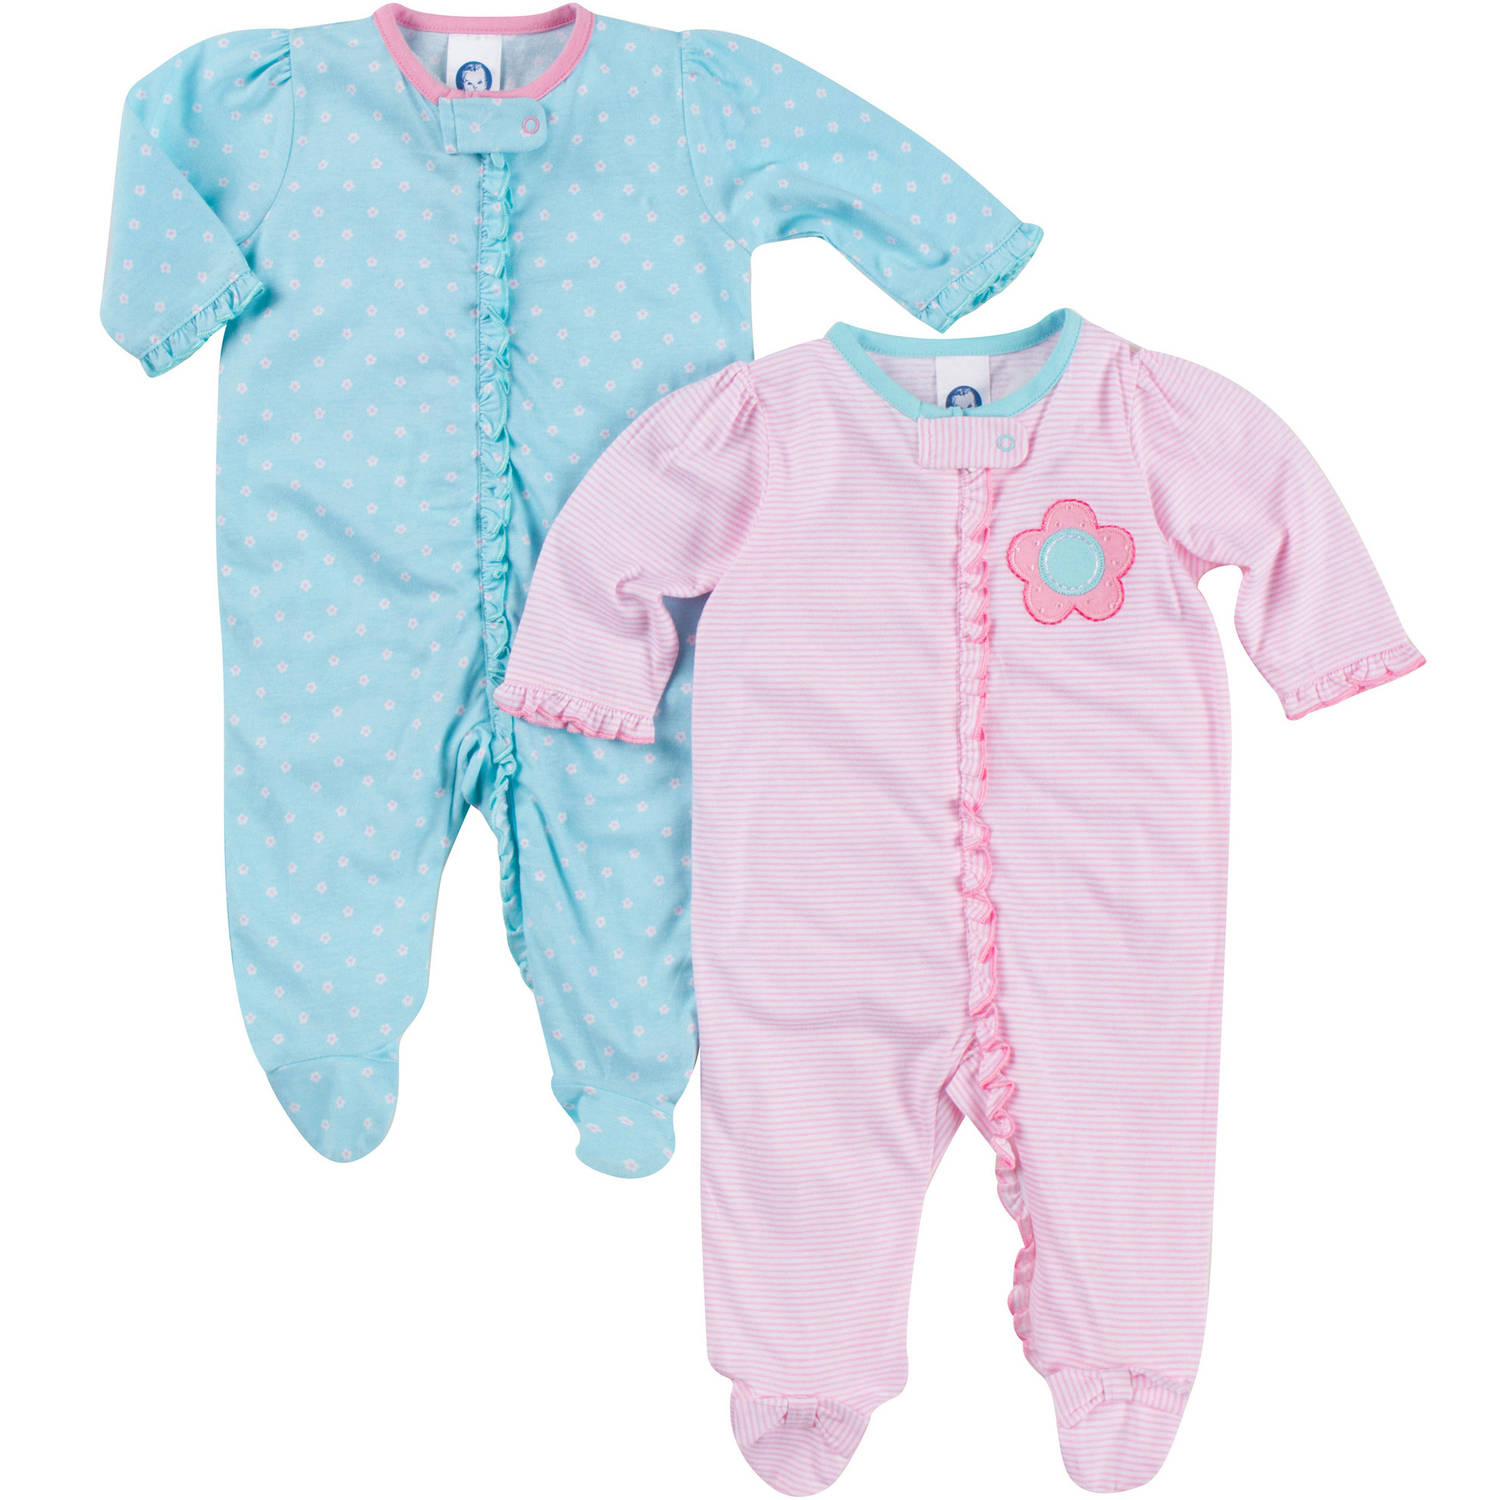 Gerber Newborn Baby Girl Sleep N Play, 2-Pack